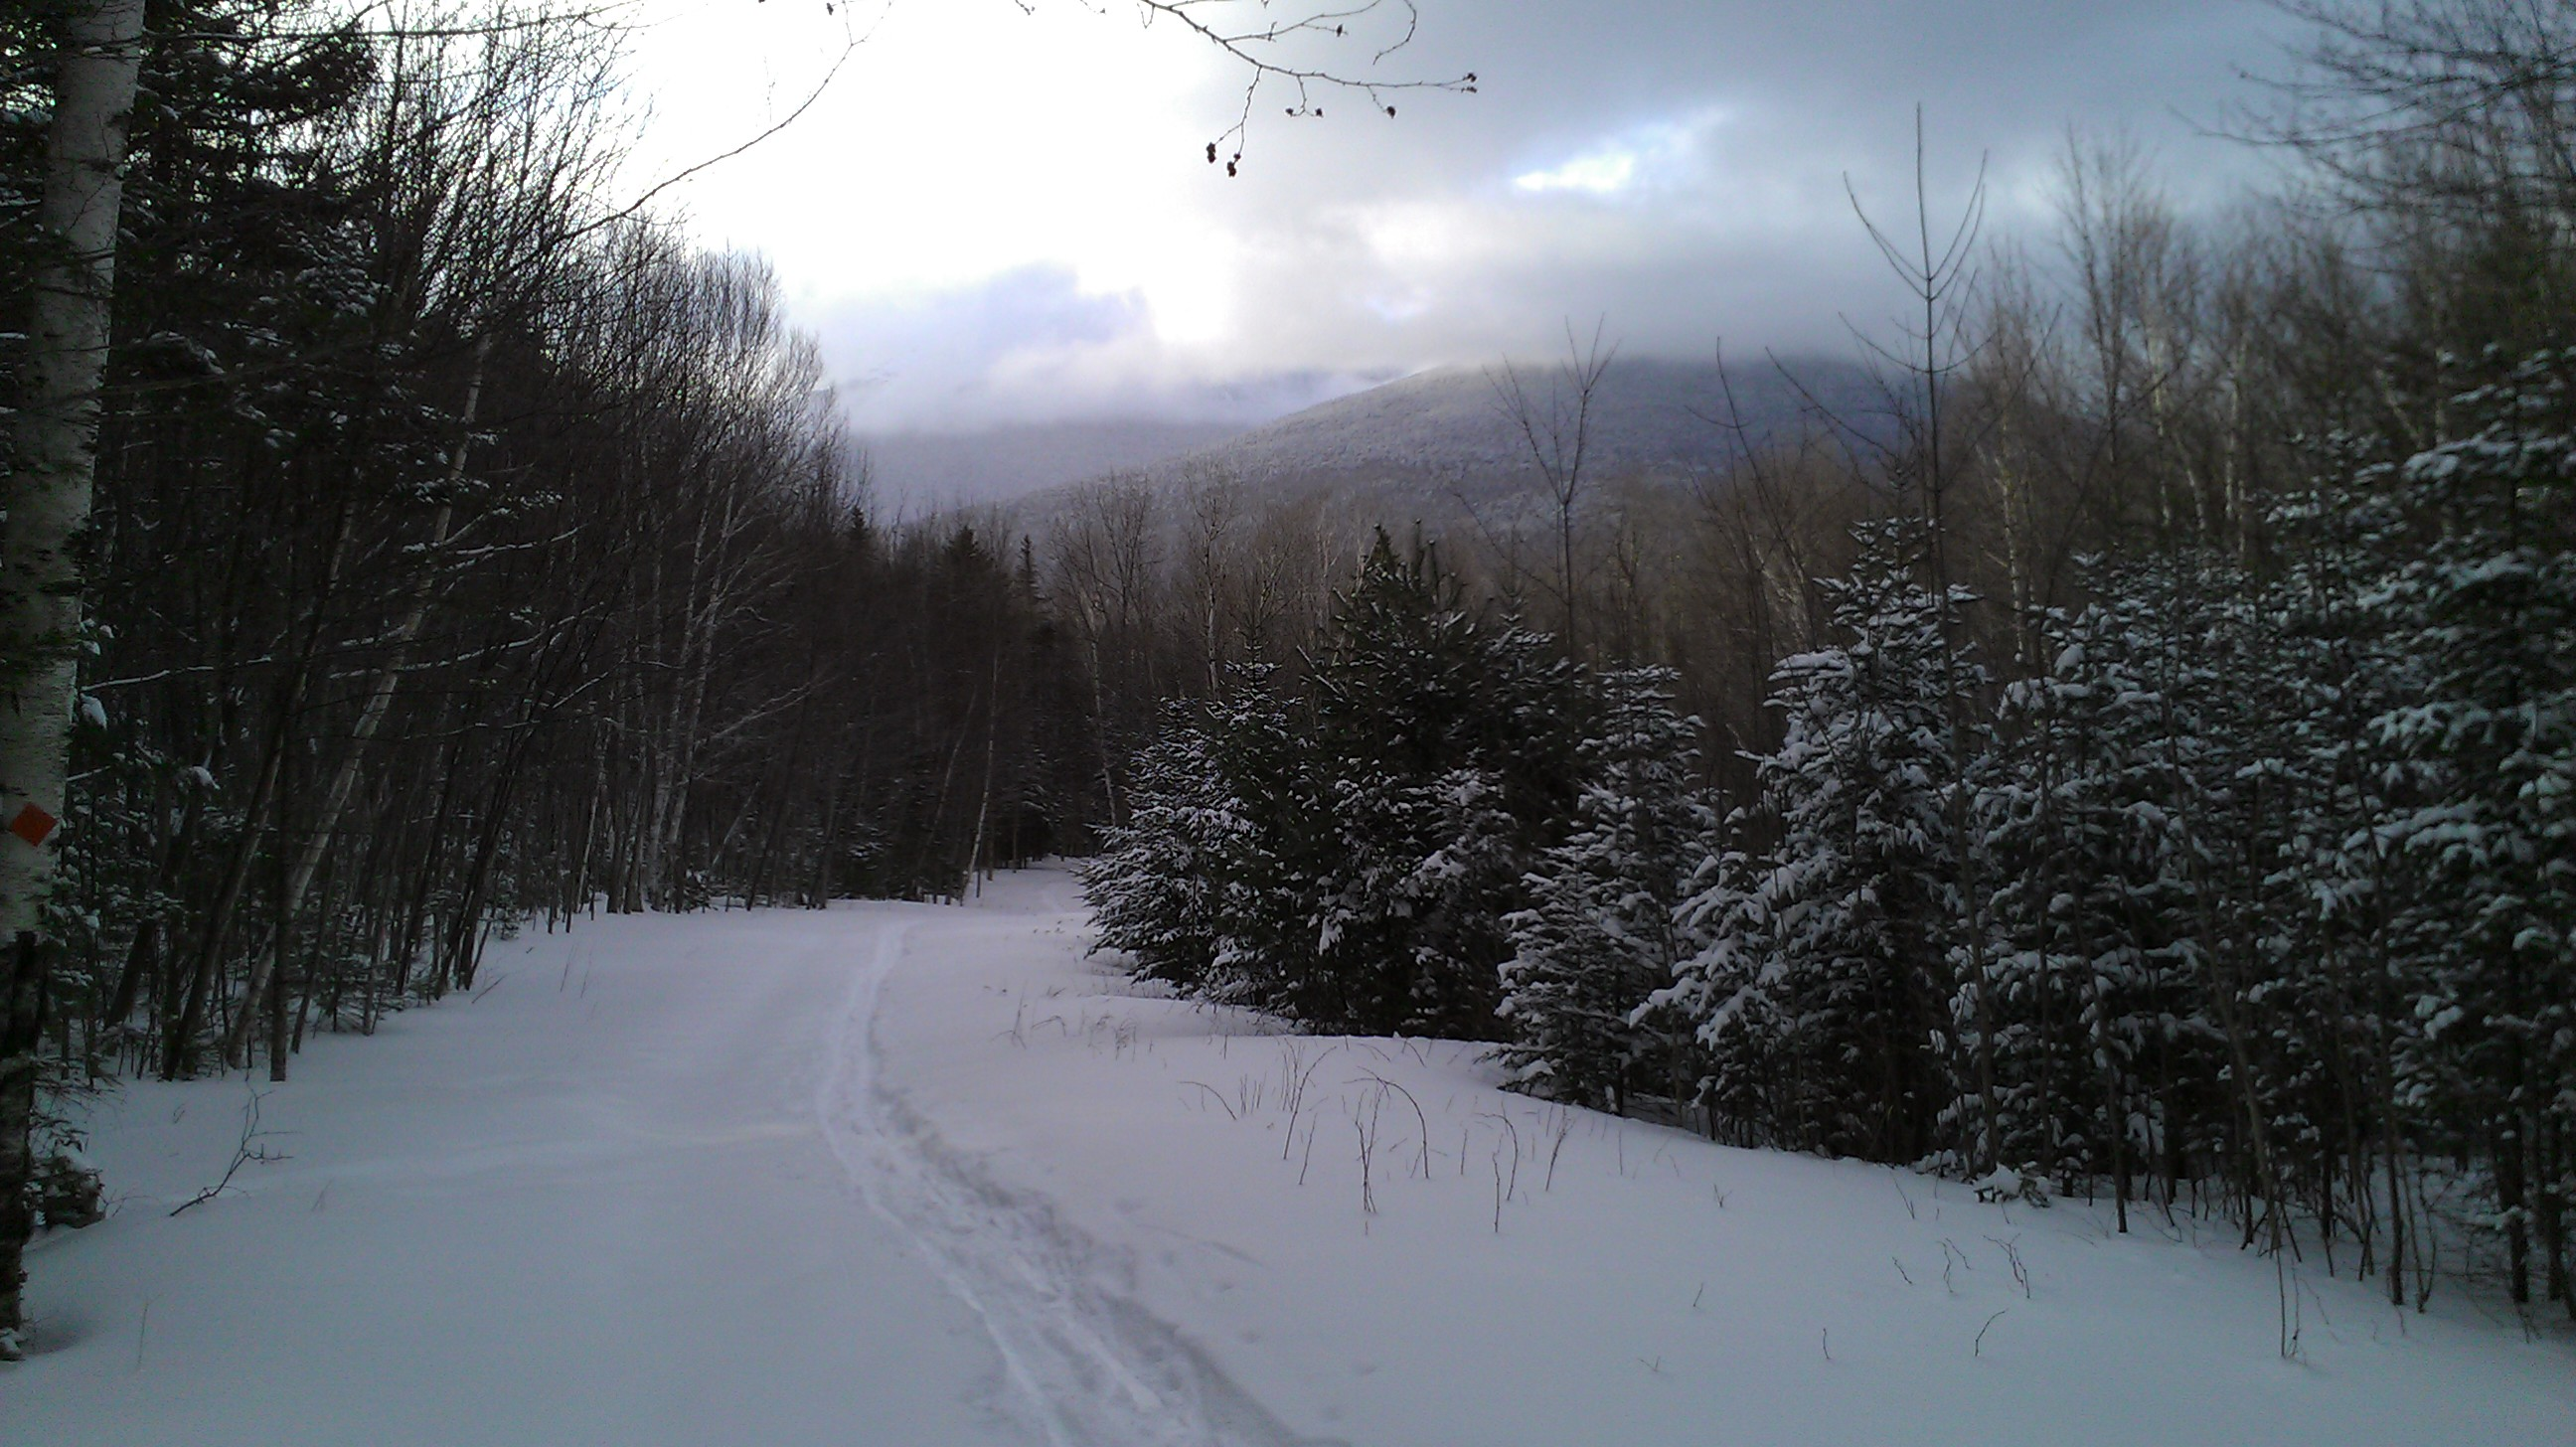 Snowshoeing at Great Glen